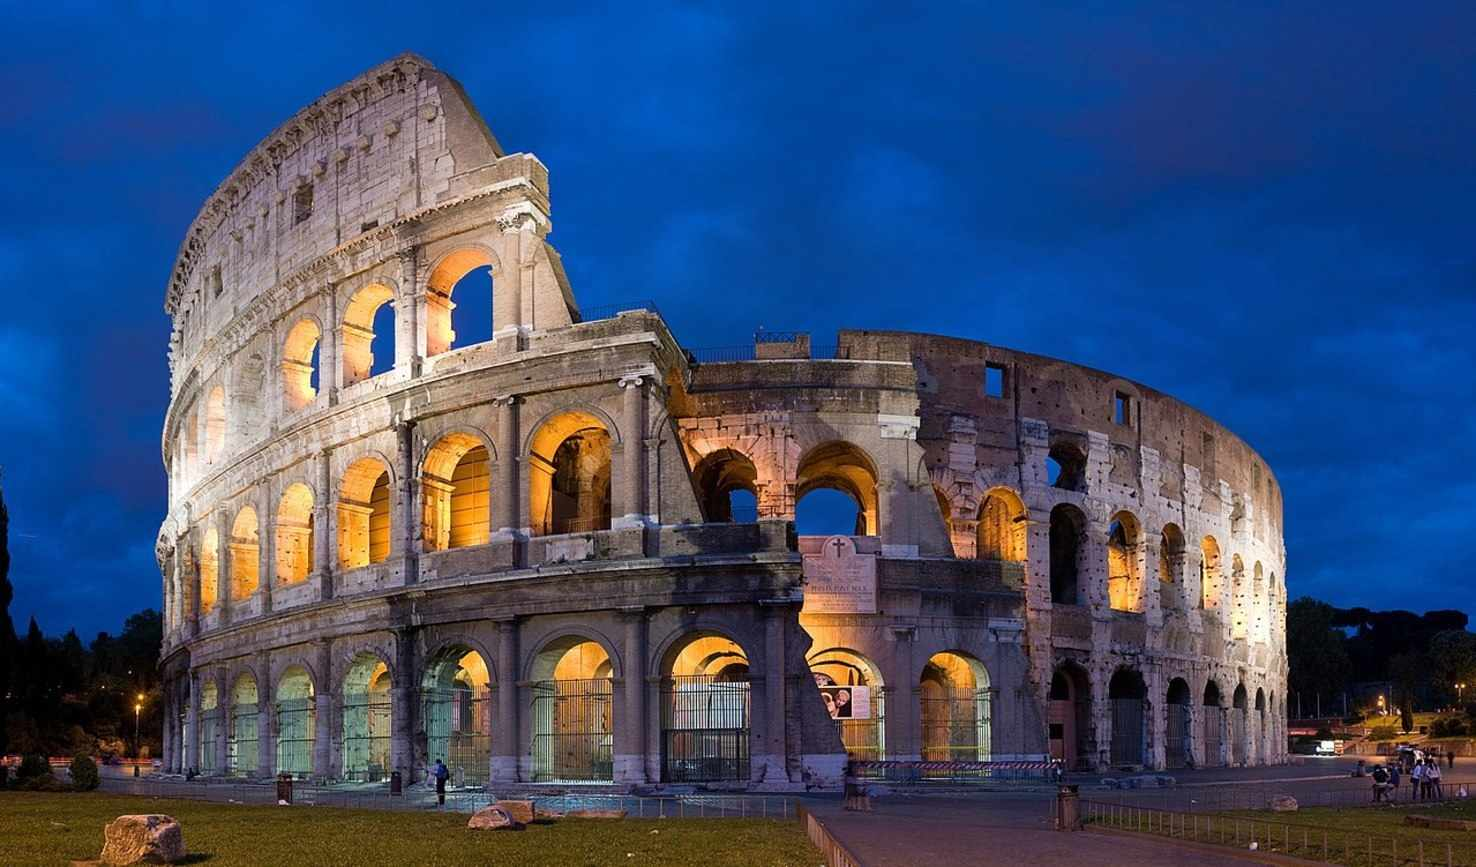 Large colosseum in rome